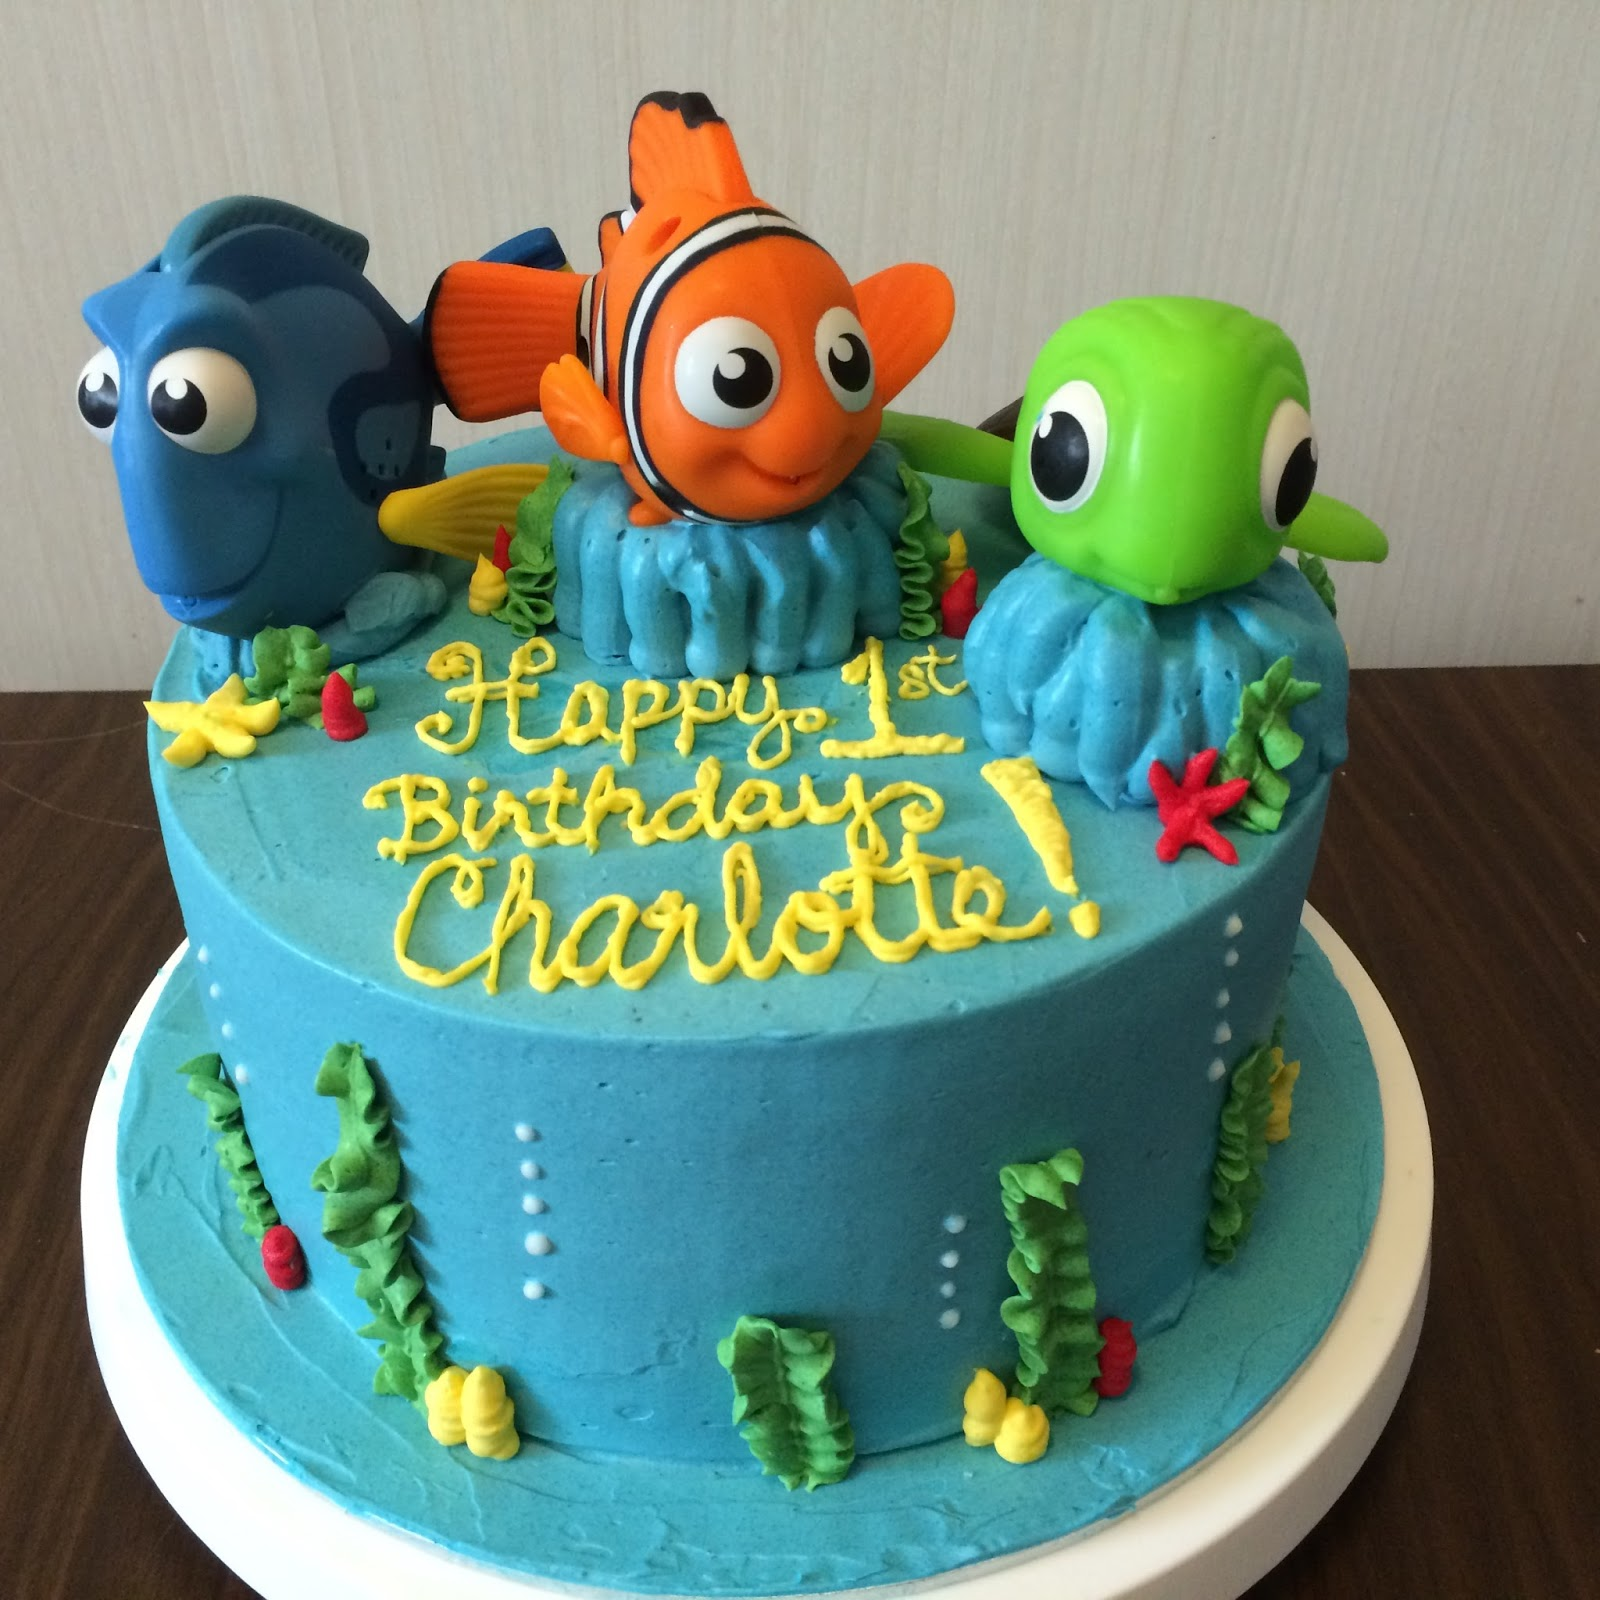 1000+ images about Cake and Cupcake Decorating Ideas on ...